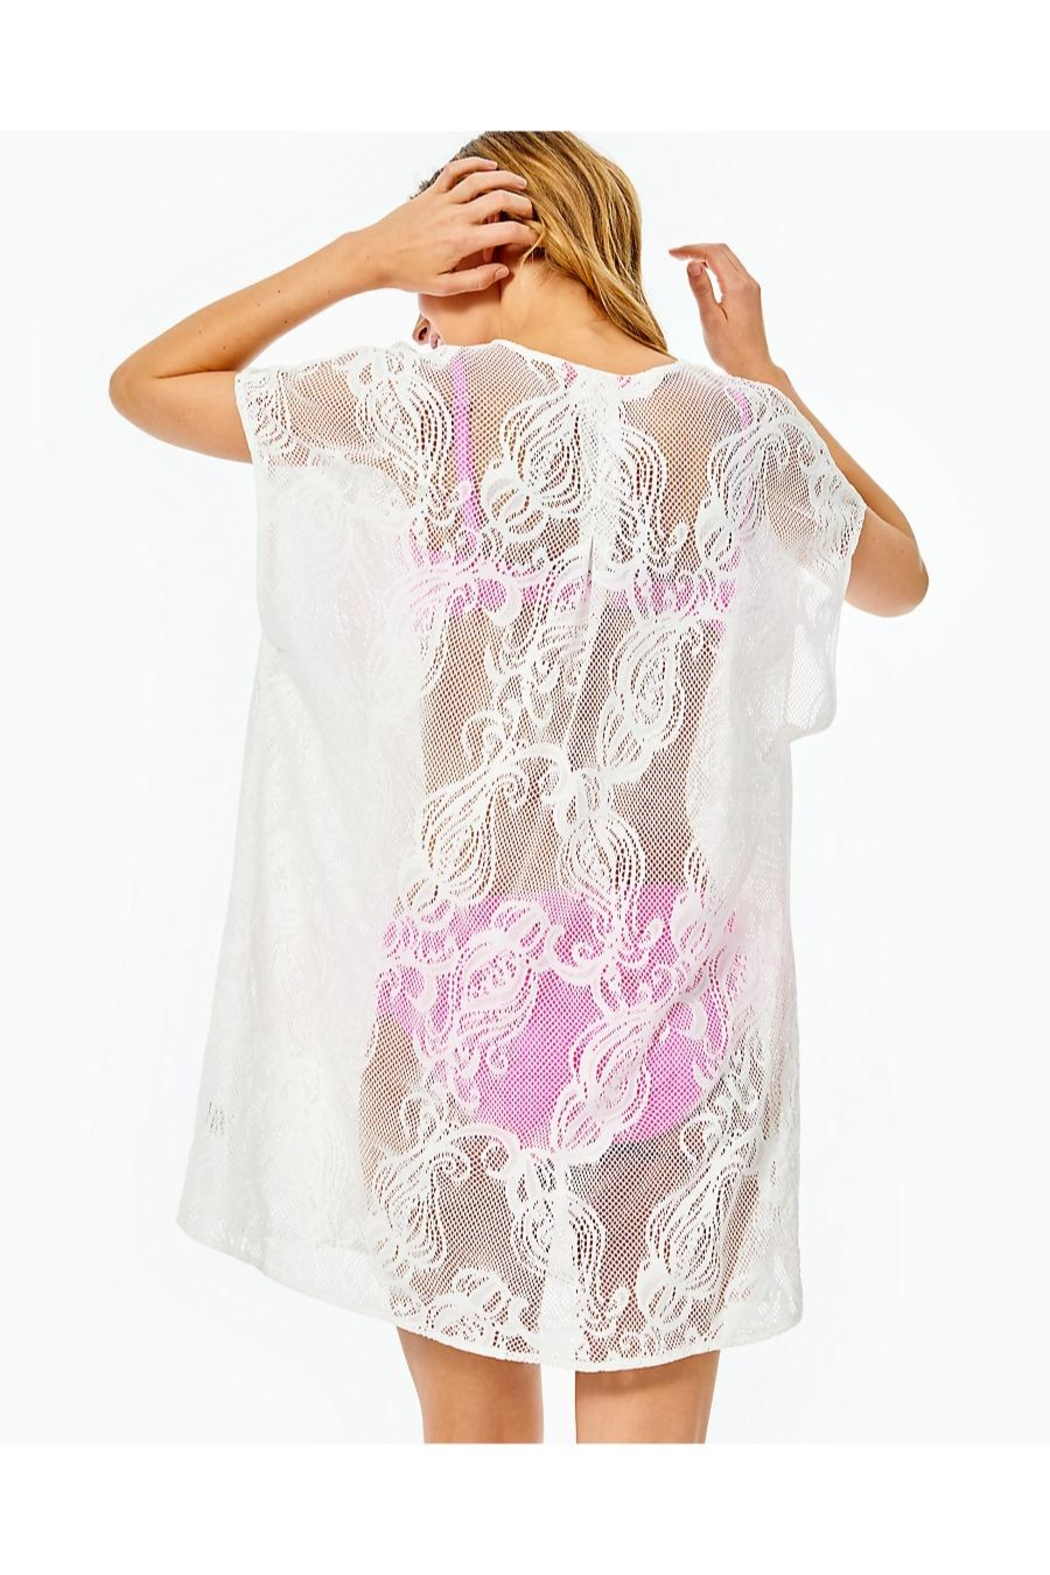 Lilly Pulitzer Aideen Crochet Cover-Up - Front Full Image